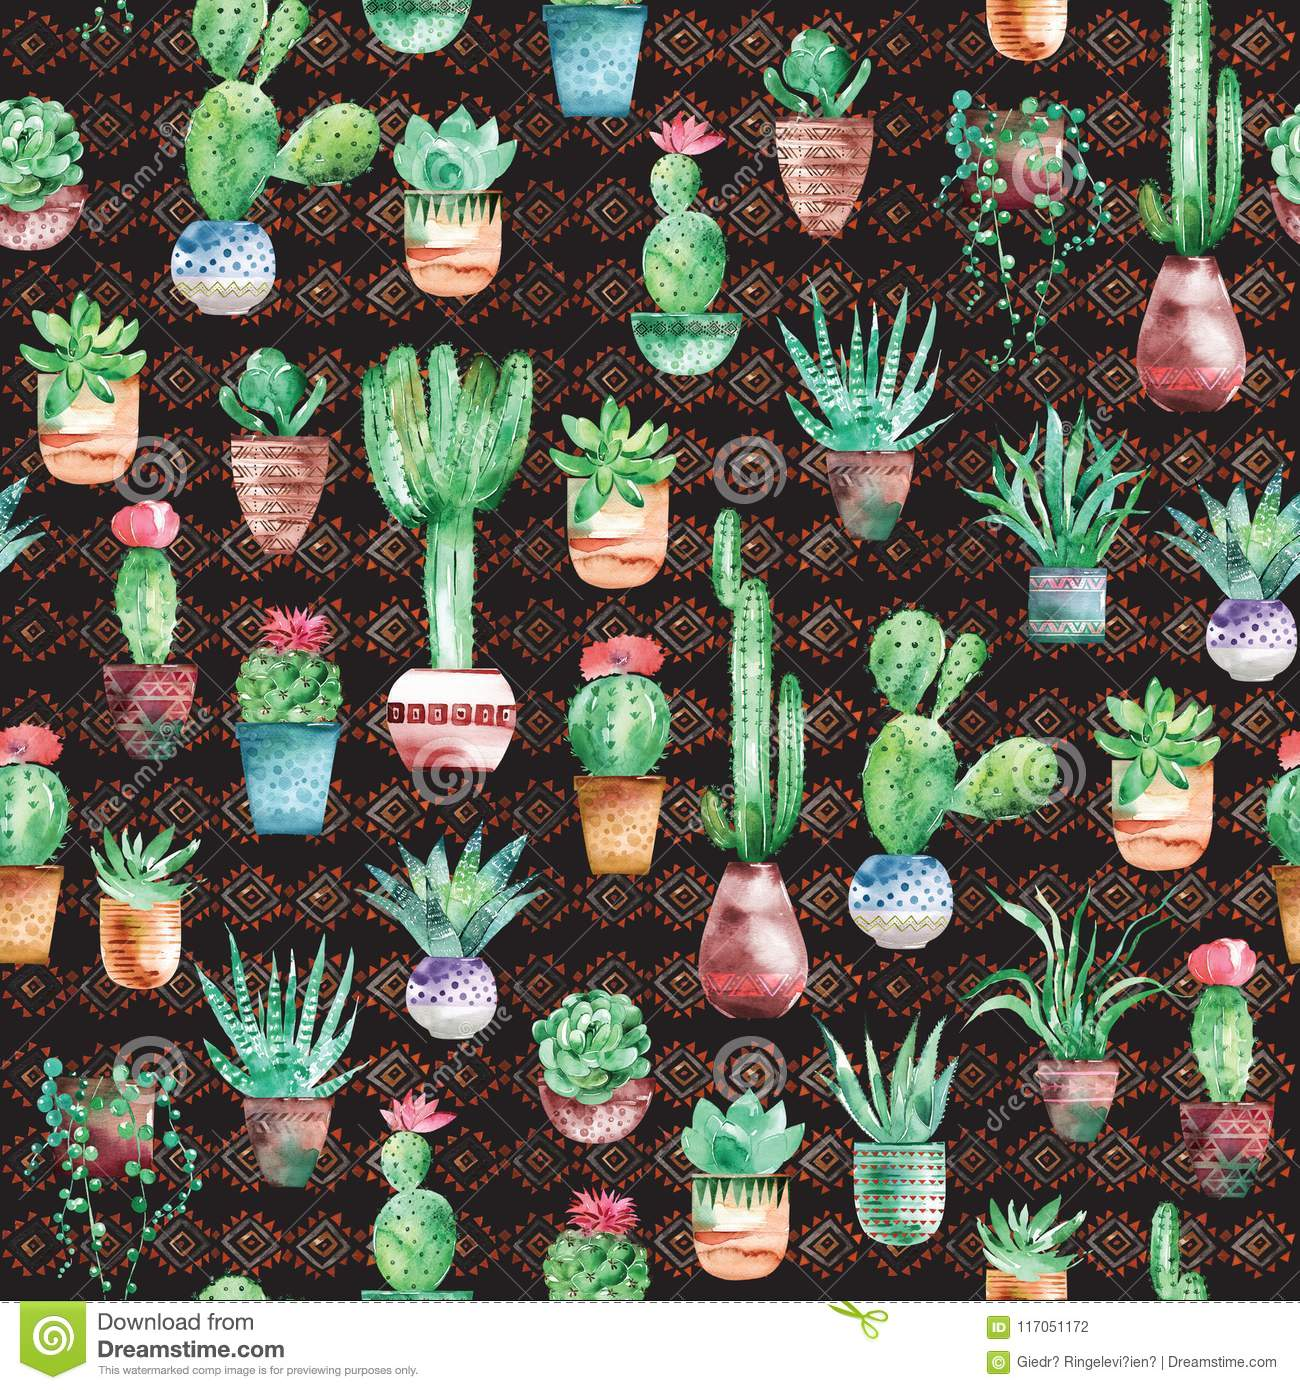 Watercolor Seamless Pattern With Succulents And Cactus In The Pots On The Dark Background Stock Illustration Illustration Of Color Fabric 117051172